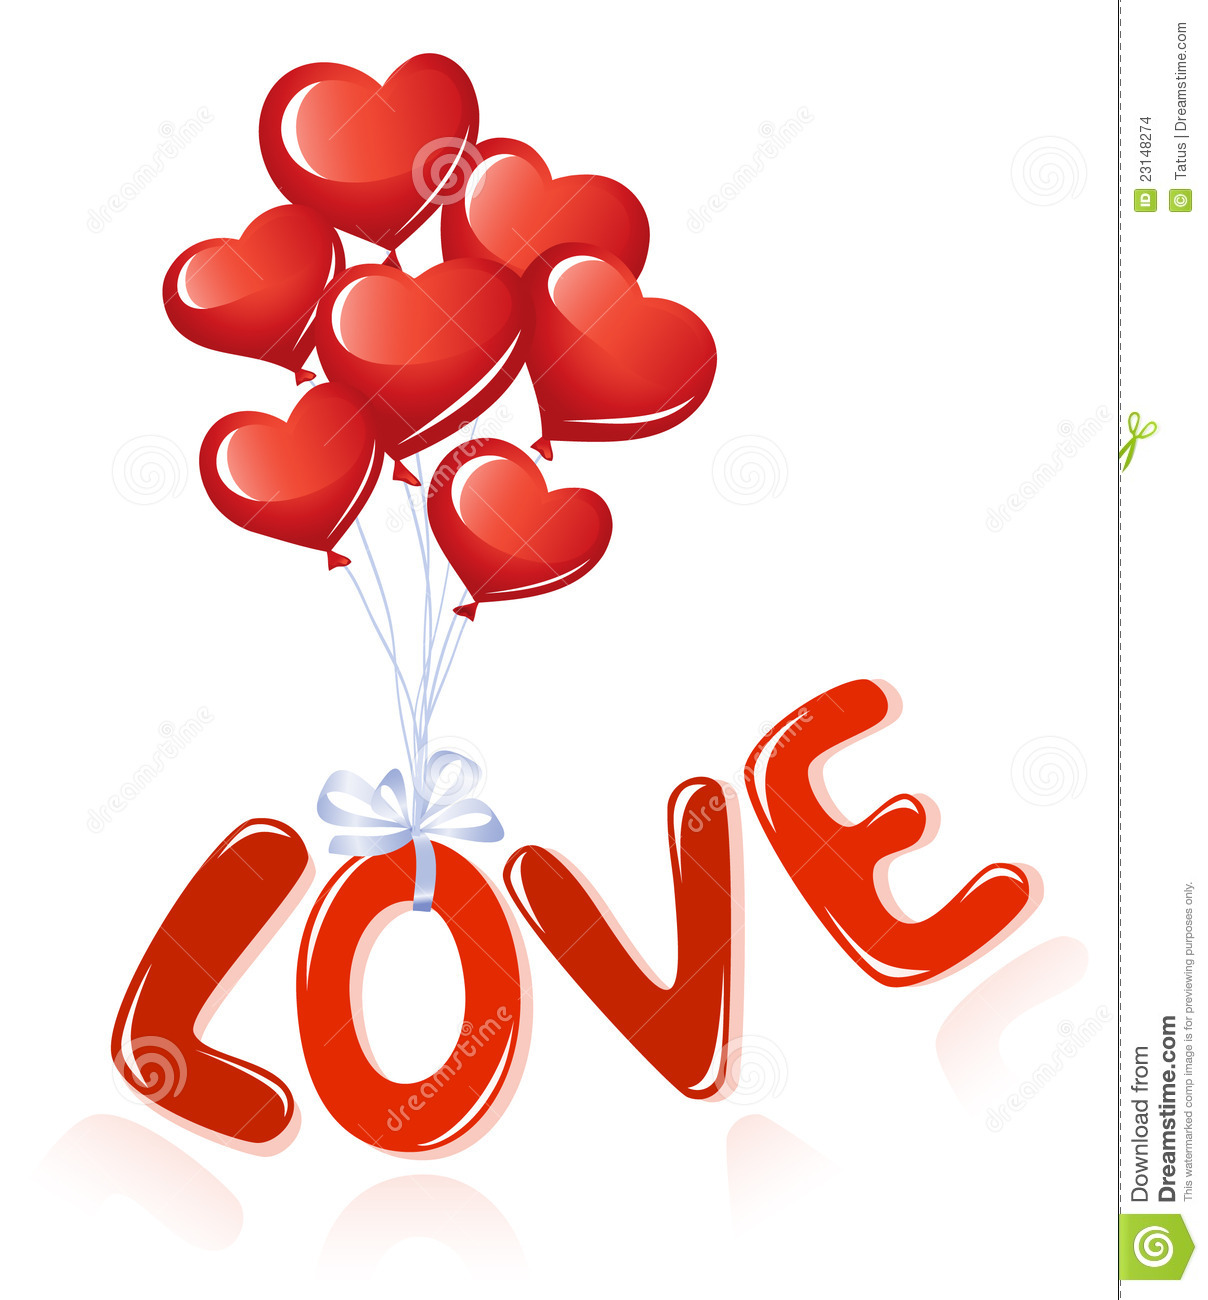 Love message with heart balloons stock vector illustration of love message with heart balloons biocorpaavc